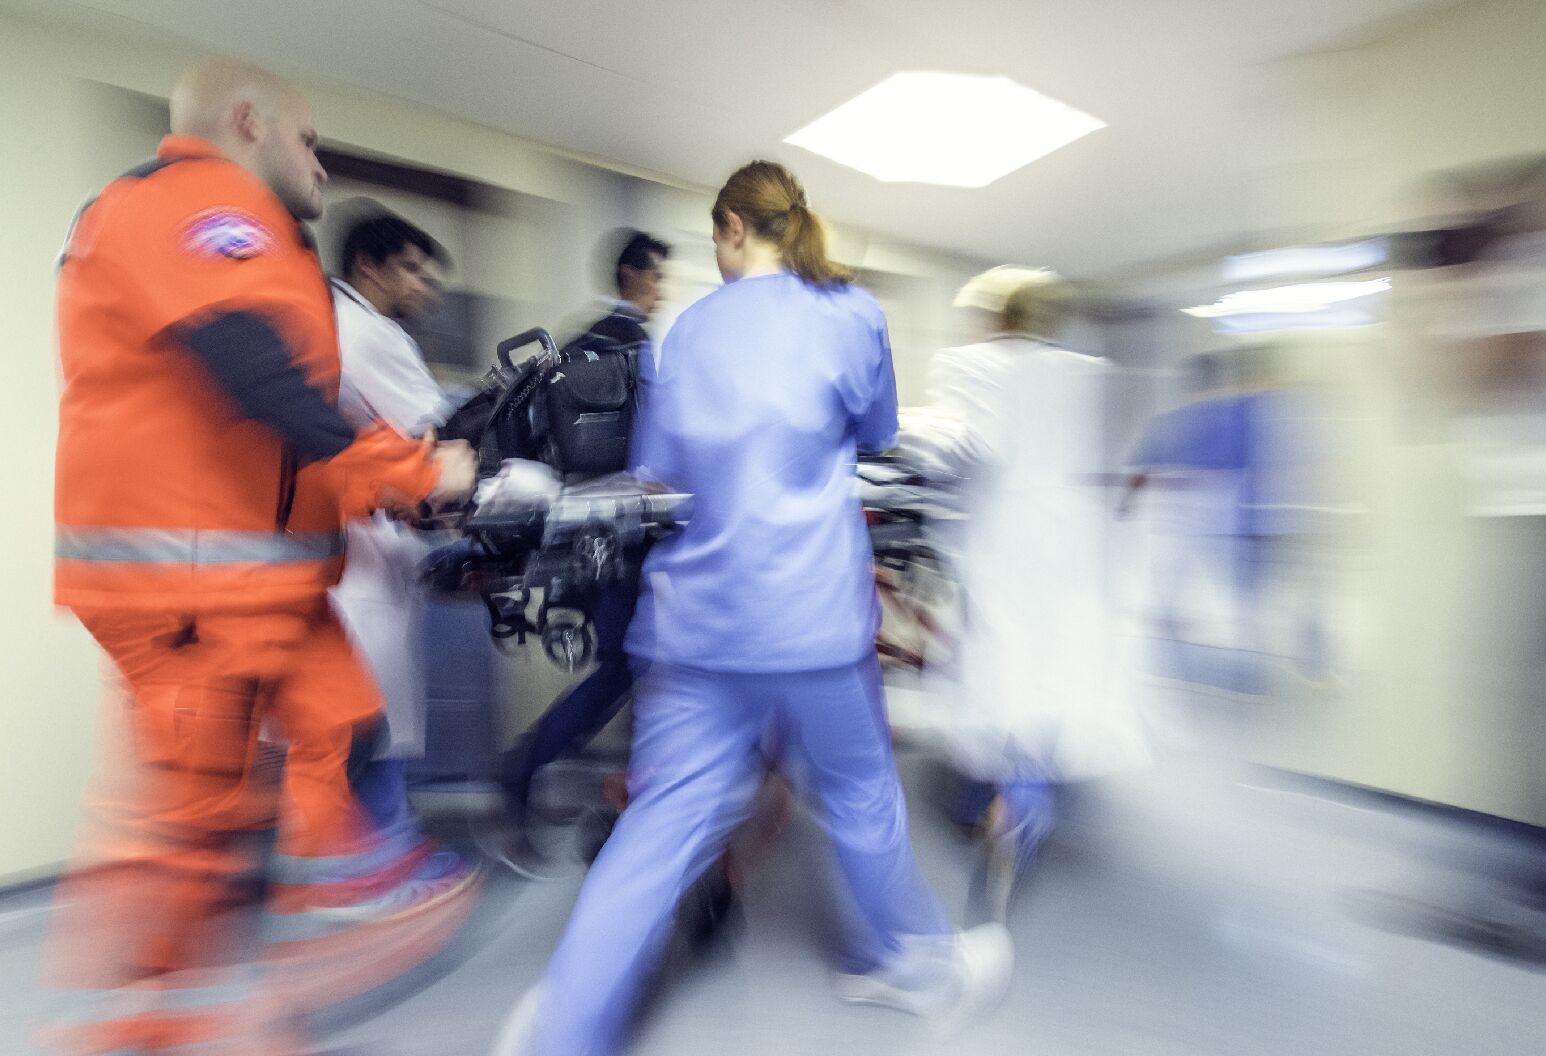 Emergency room staff rushes patient in from ambulance